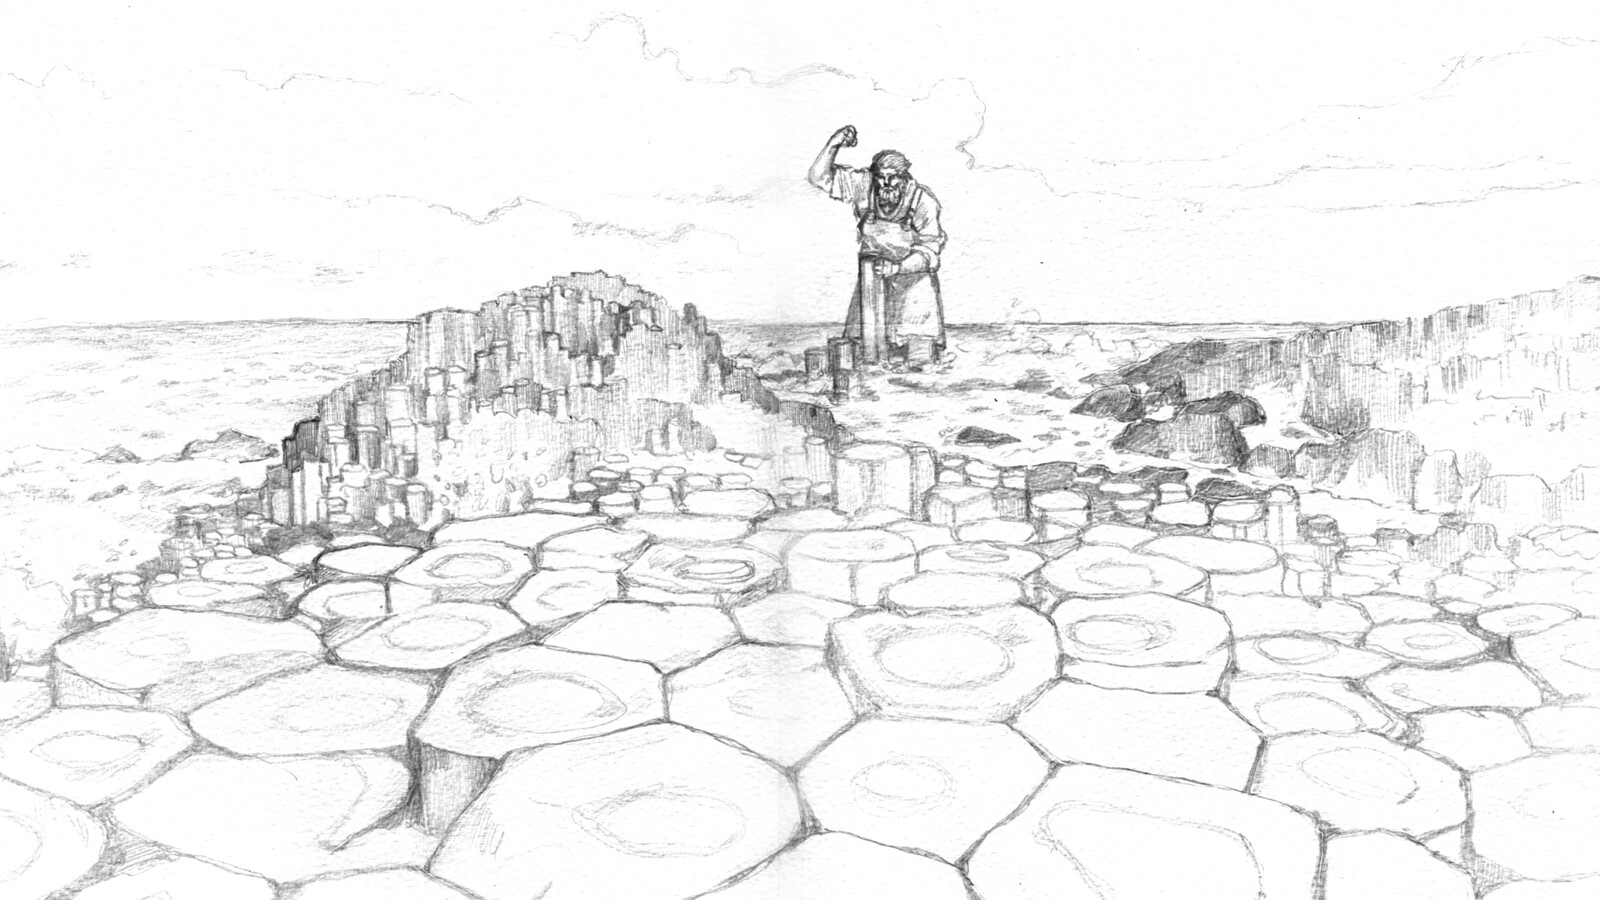 WIP sketch of Fionn building the causeway